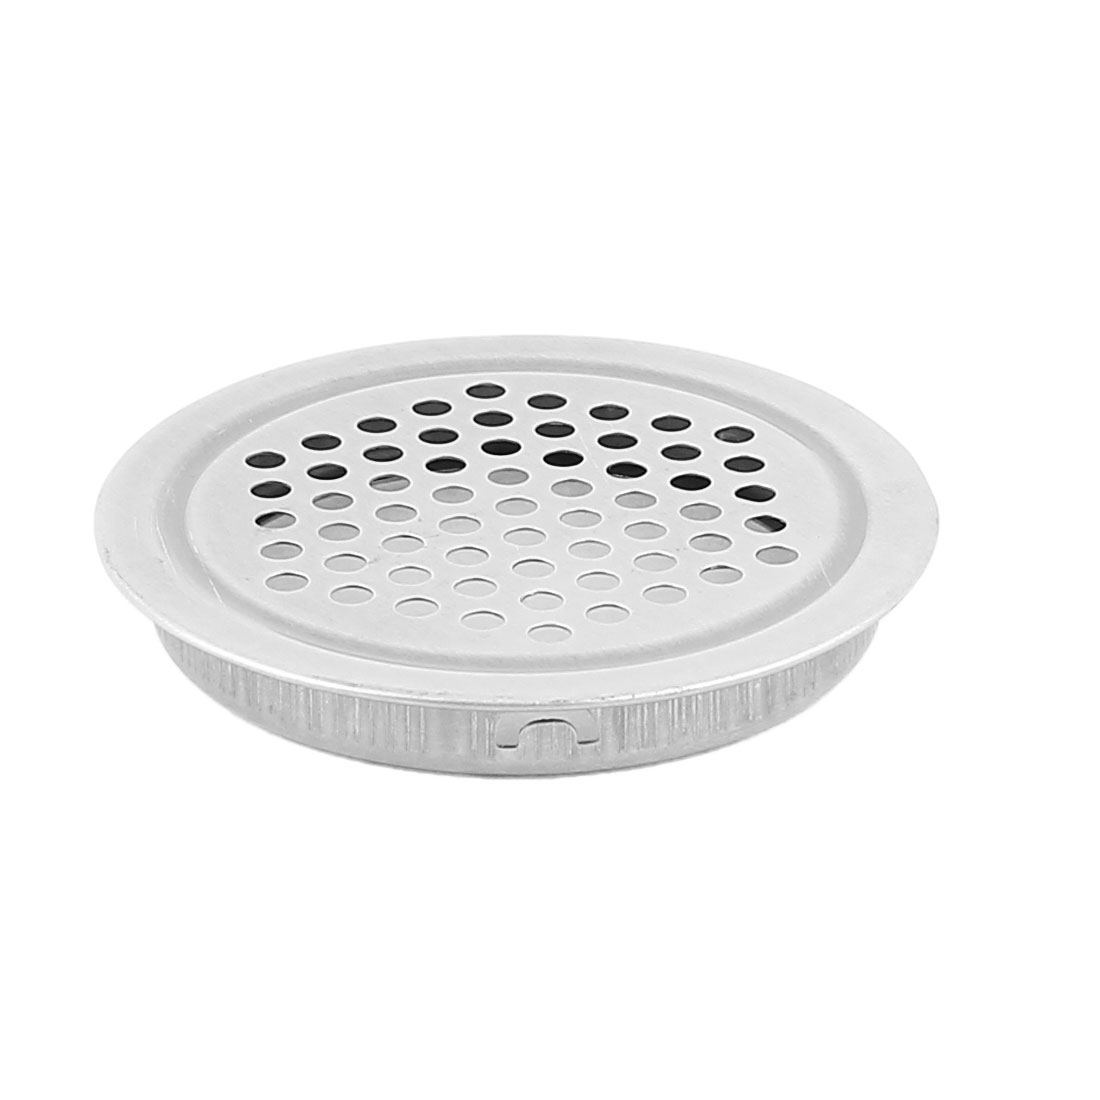 2.6 Inch Scraps Stopper Silver Tone Stainless Steel Sink Basin Strainer